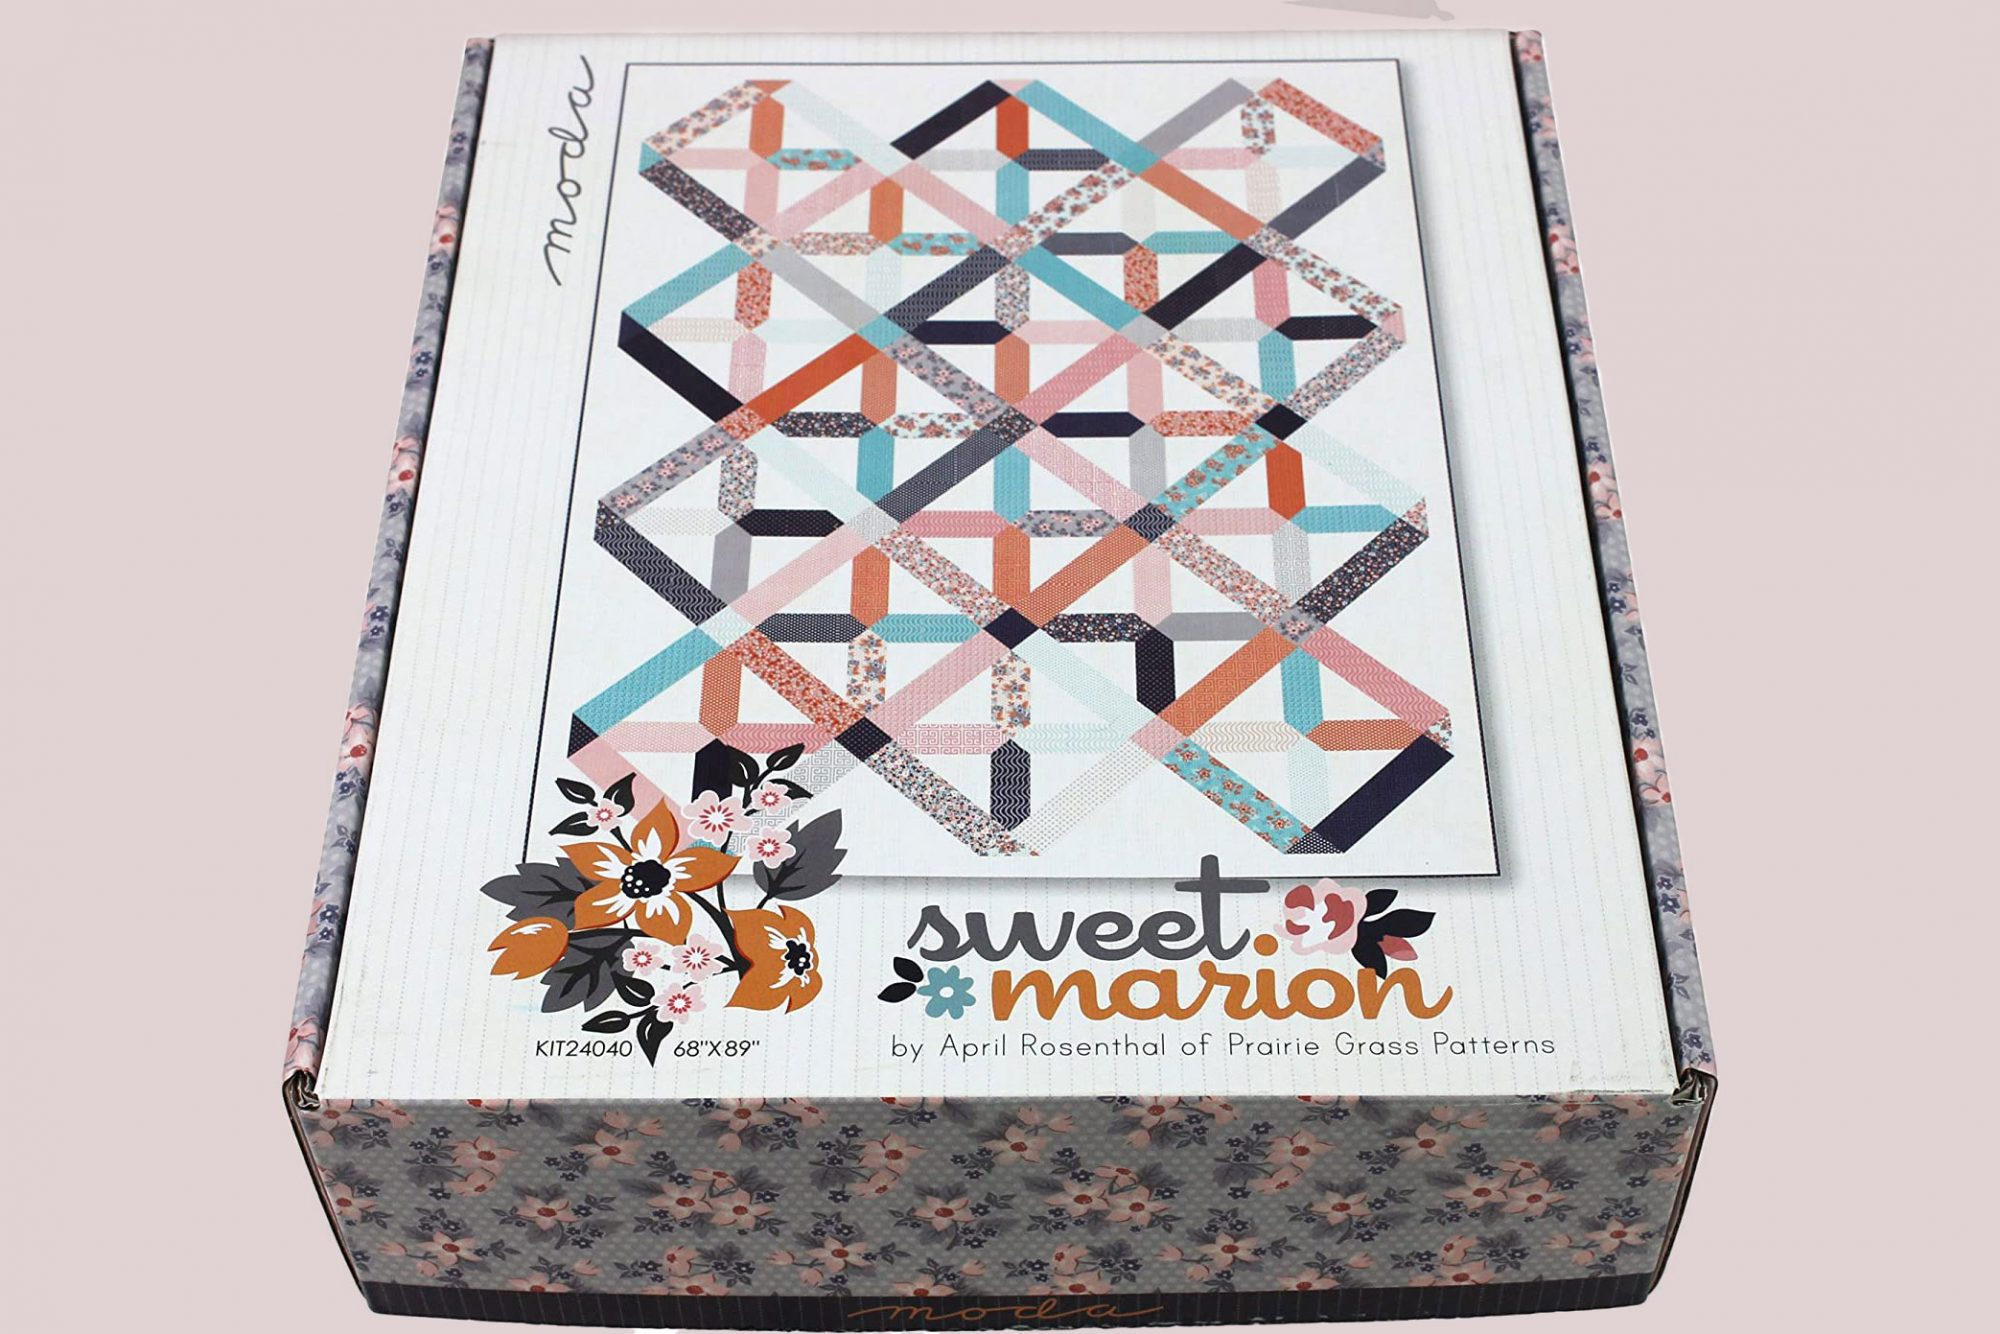 sweet marion quilt kit box